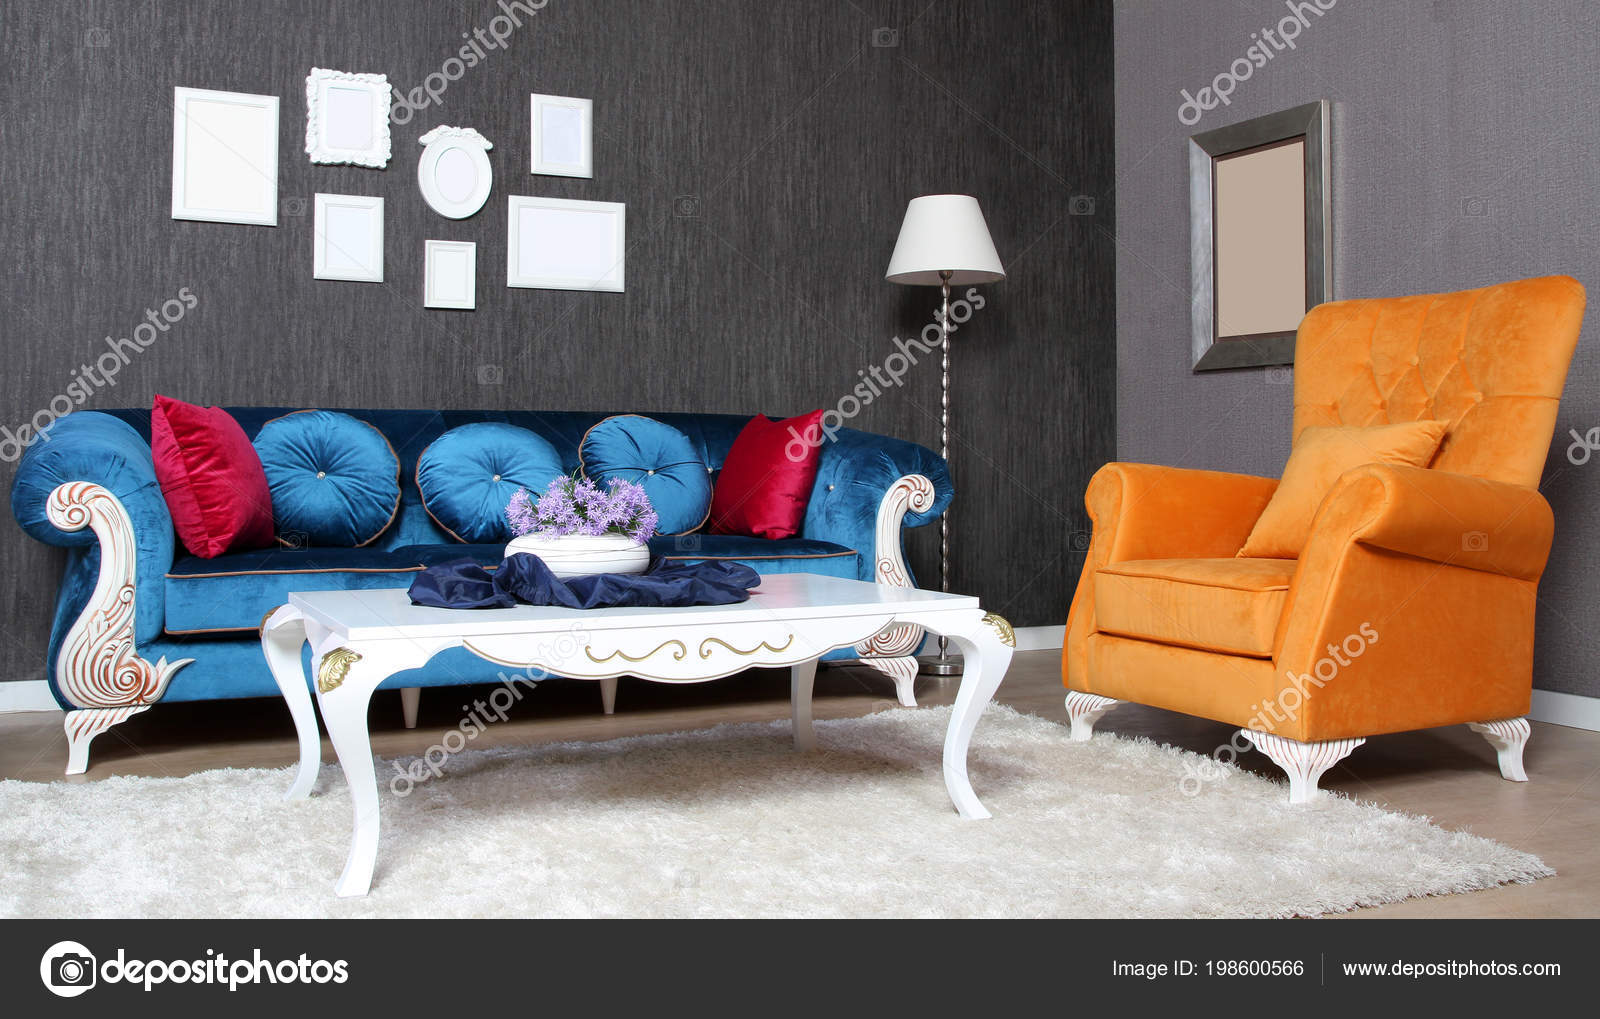 Sofa Set Images Free Download Sofa Set Interior Stock Photo Saaras 198600566